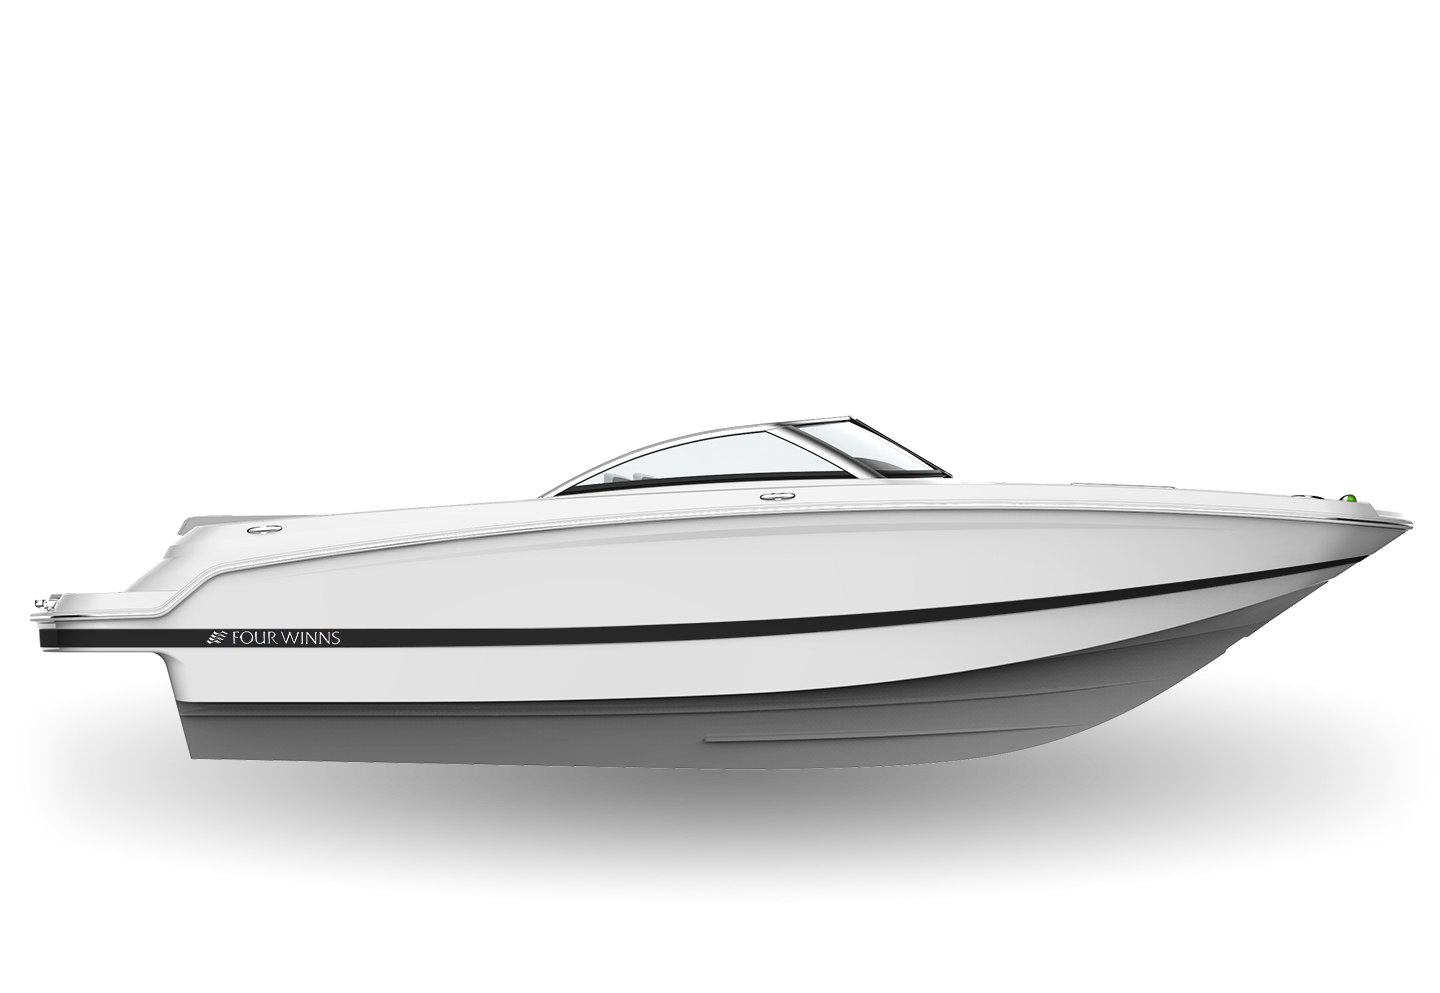 Speed Boat PNG HD Transparent Speed Boat HD.PNG Images..